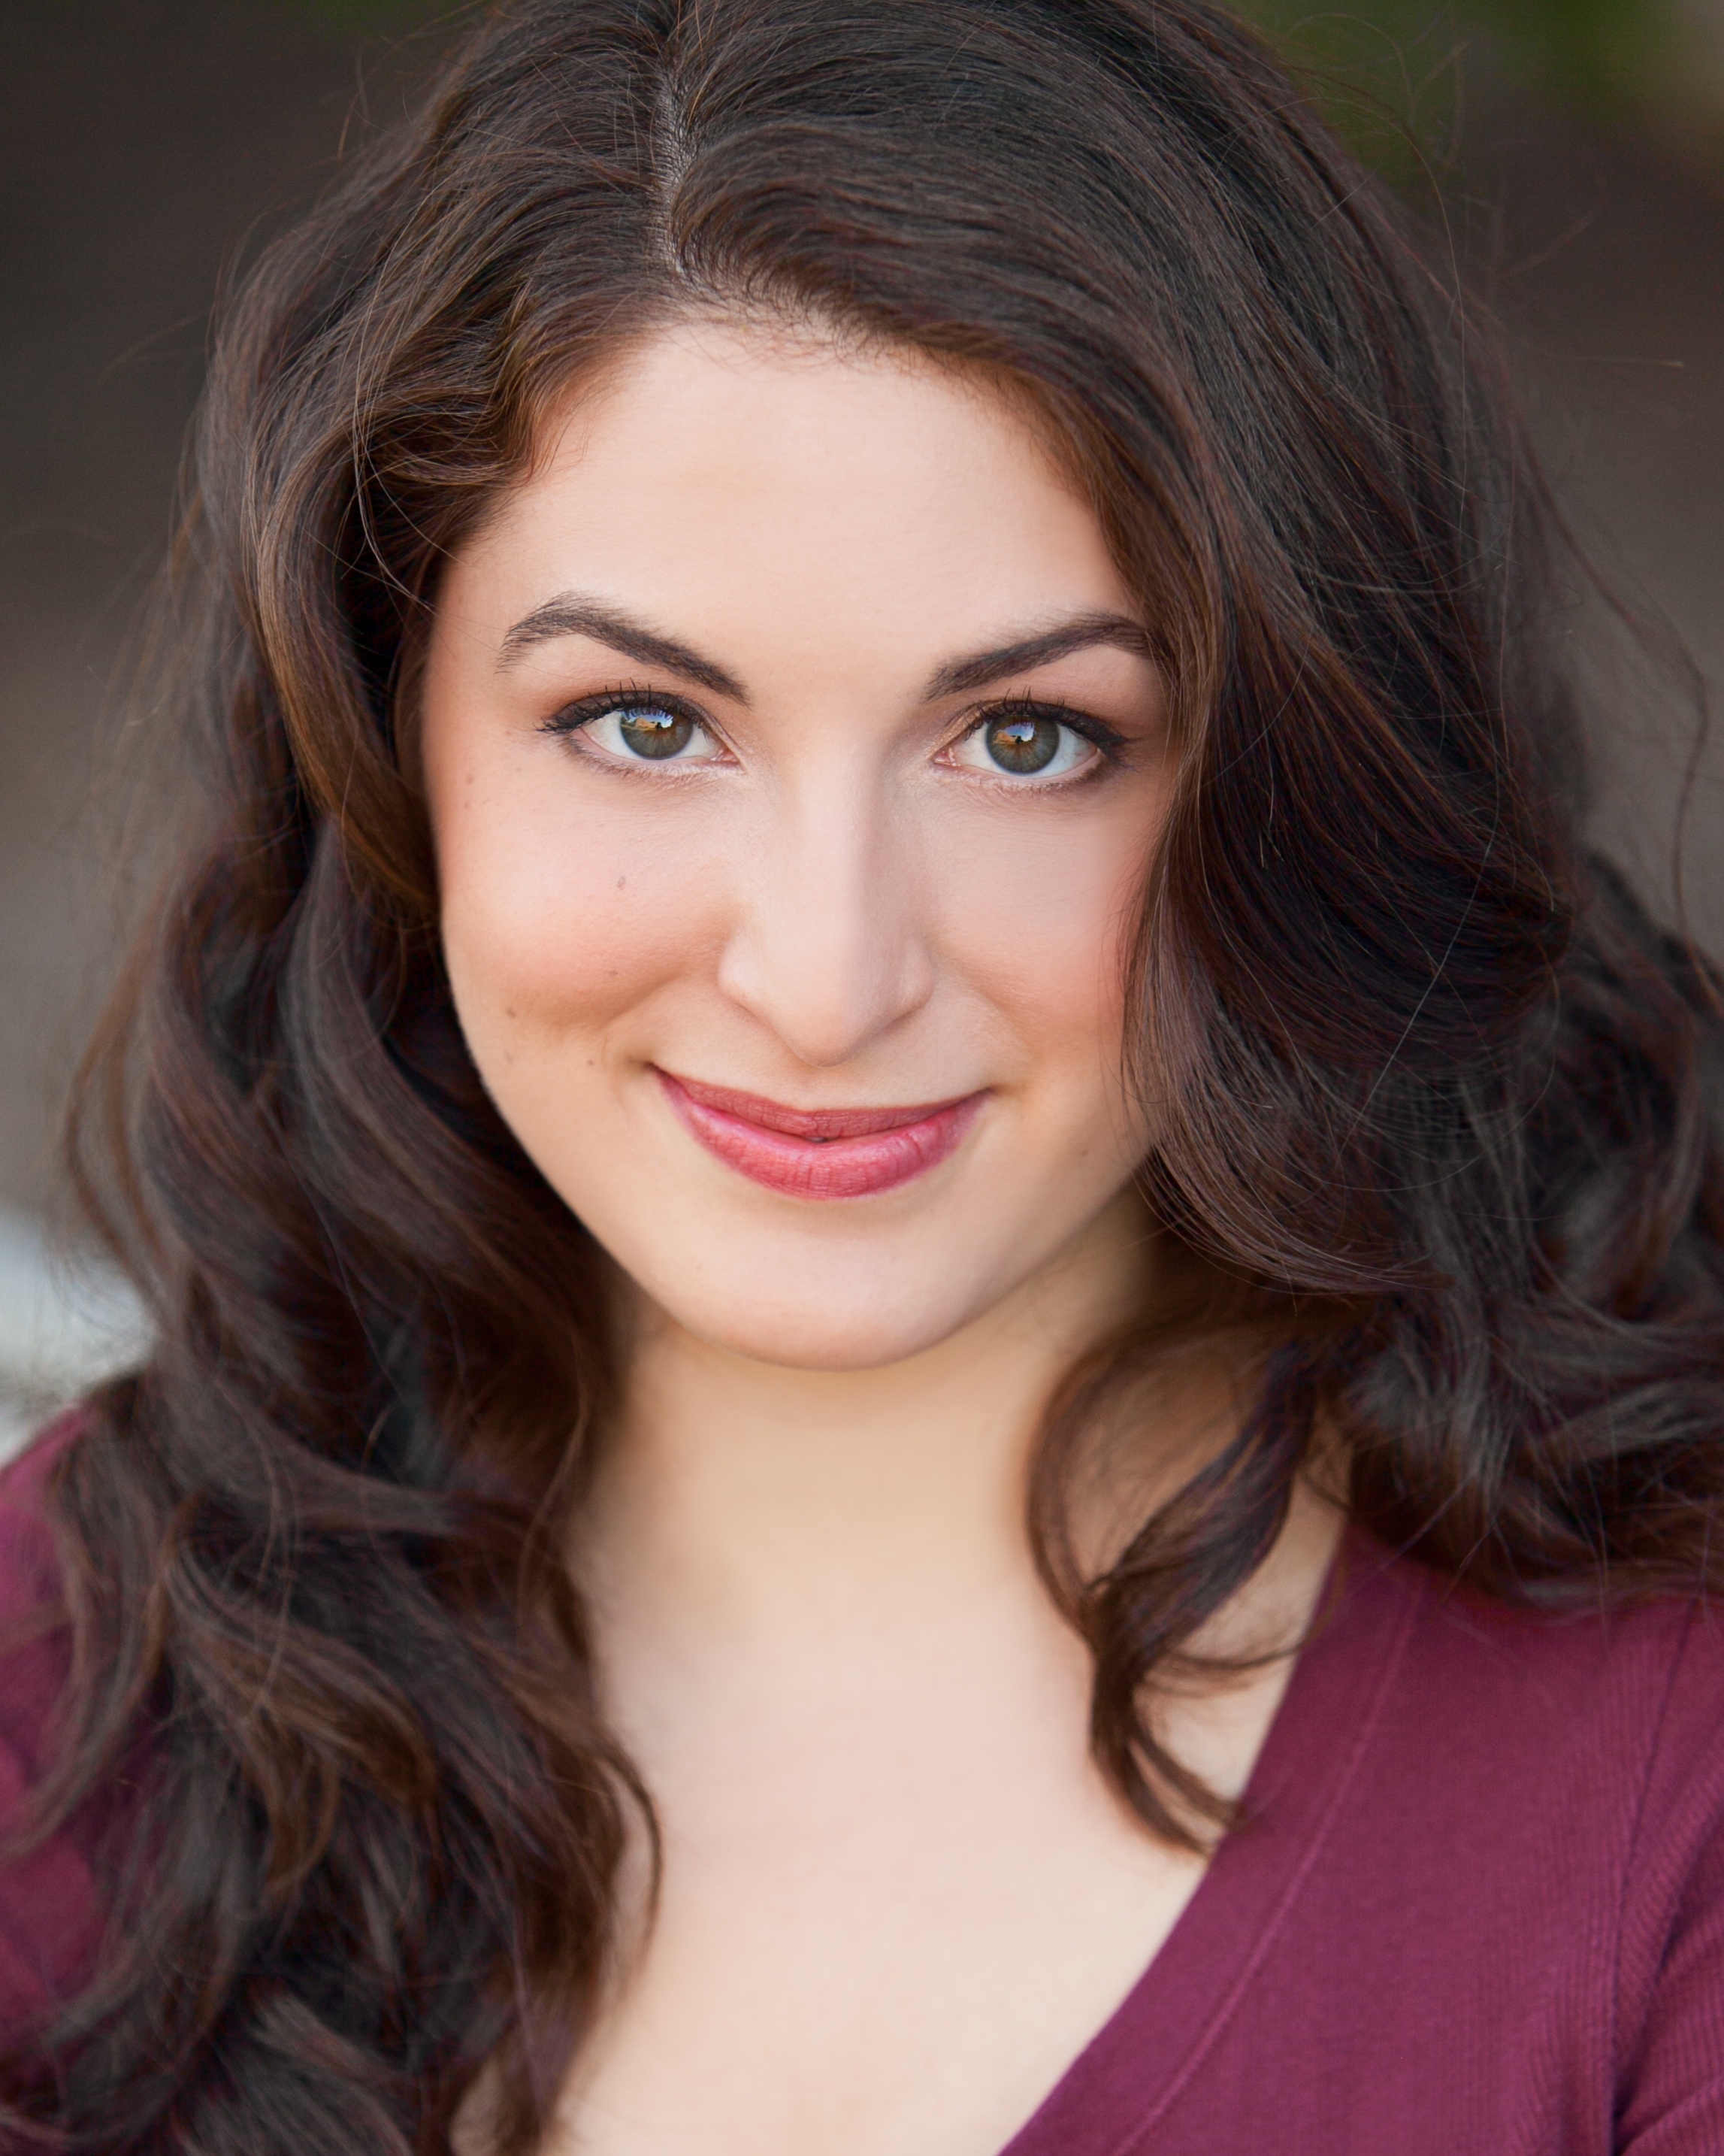 ANNA SEGATTI  (u/s Gilda Radner)   is thrilled to be making her Mercury Theater Chicago debut. Favorite credits include: Little Red Ridinghood in  Into The Woods  (Metropolis Performing Arts Center), Susie in  Snapshots  (Circa '21), Crissy in  Hair  (The Barn Theatre), Ruby Rae in  Best Little Whorehouse in Texas  (The Barn Theatre), Irene in  The Circus in Winter  (BSU), and Mrs. Cratchit in  A Christmas Carol  (National Tour). Anna is a graduate of Ball State University (BFA: Musical Theatre). Anna would like to thank Walter & Warner for this incredible opportunity. She would also like to thank her Mom, Dad, brother, sister, extended family, friends that are like family, and Andy for their constant love and support. Peace, Love, & Laughs! www.annasegatti.com